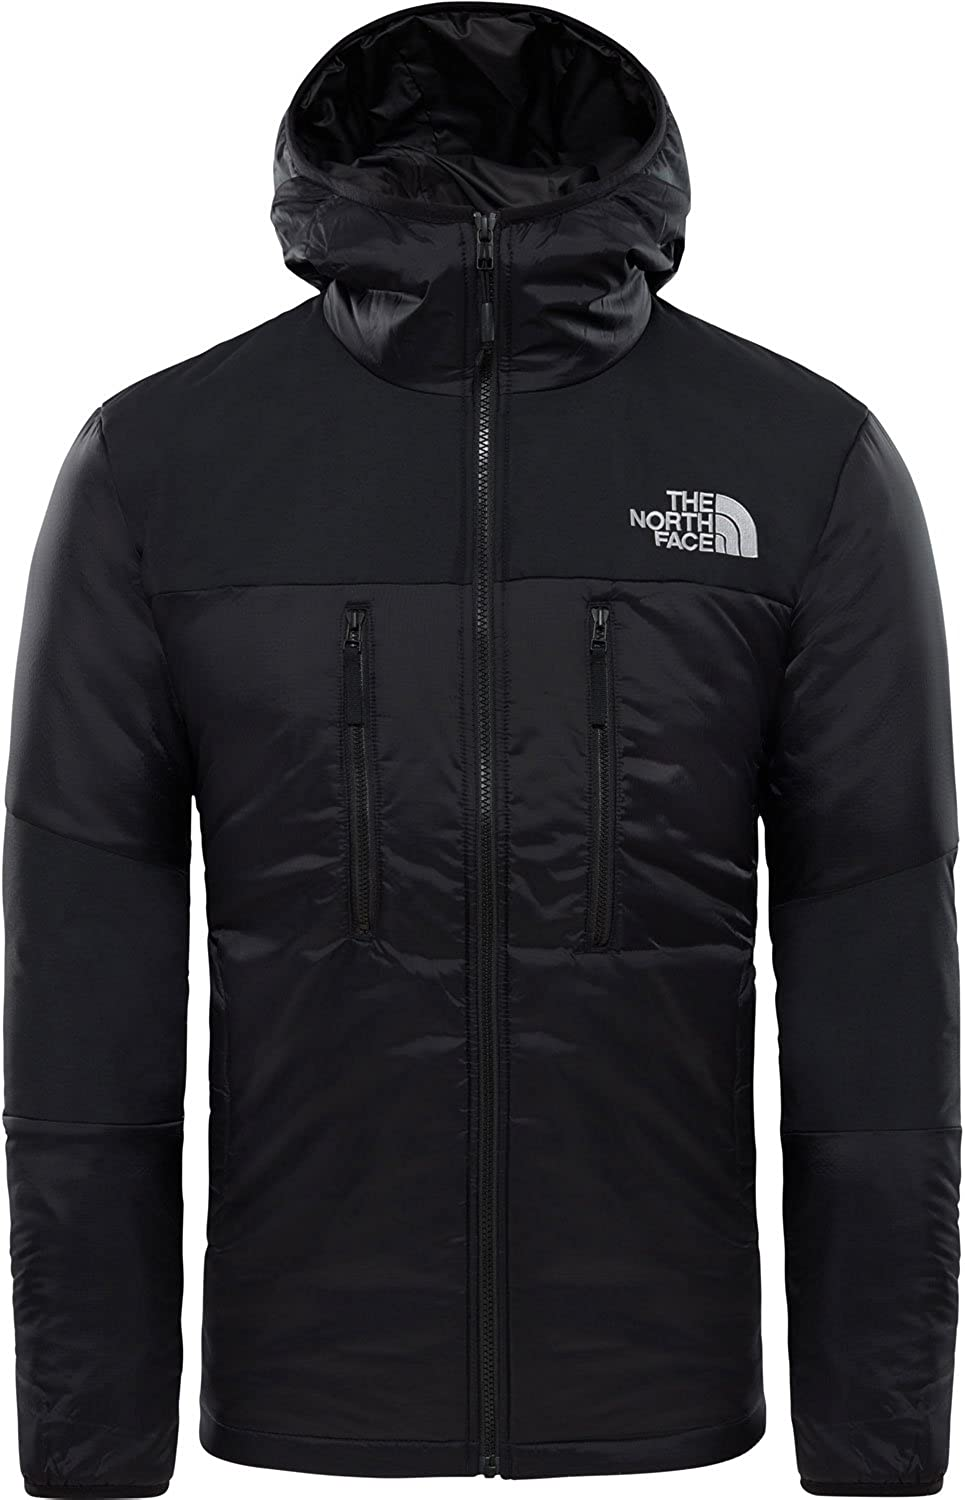 website for discount promo codes new list THE NORTH FACE Men's Light Puffer Jacket, Black: Amazon.co.uk ...